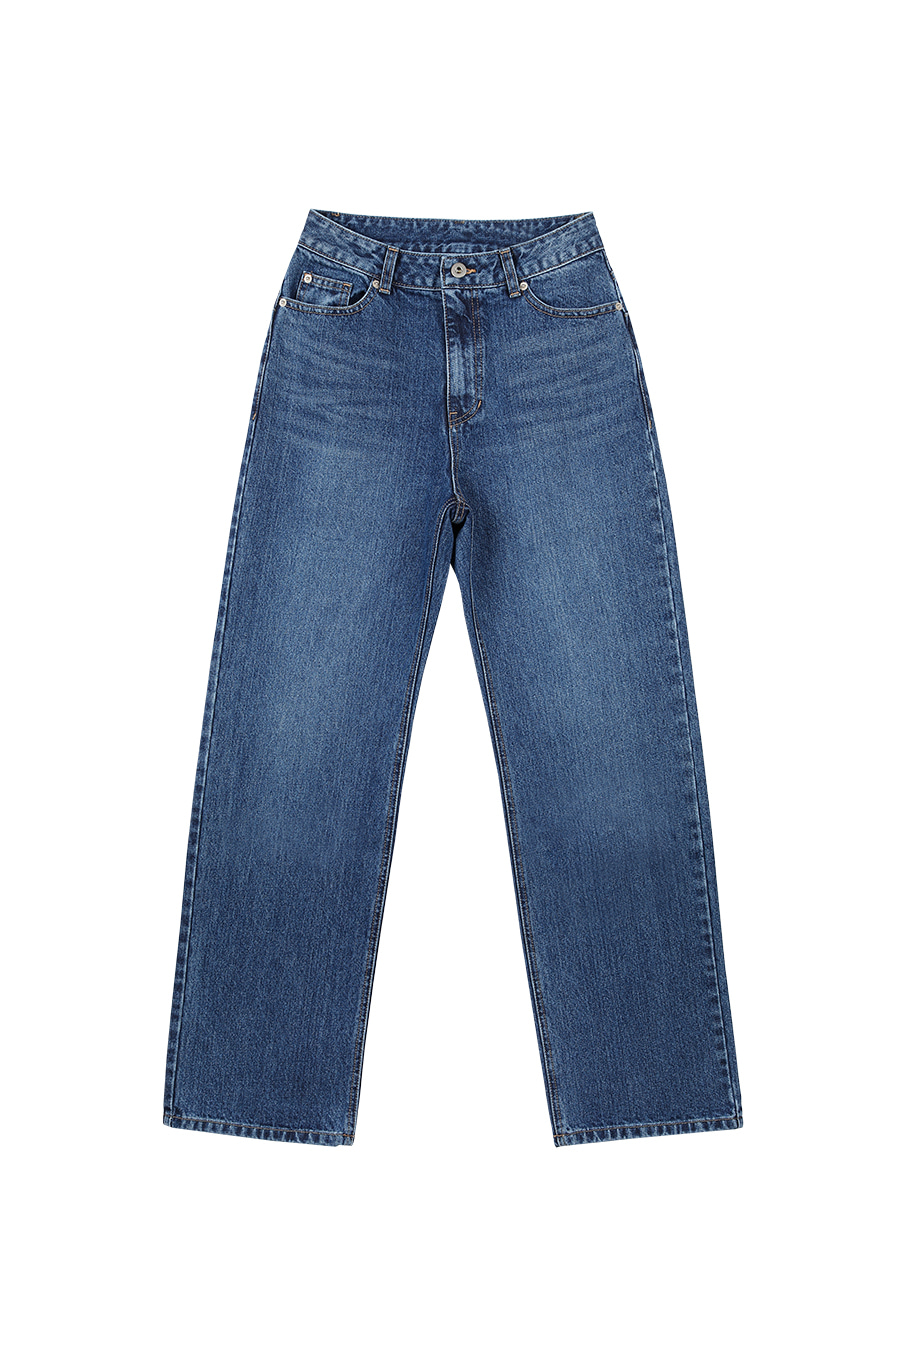 Jeans Midrise Straight fit Mid Blue